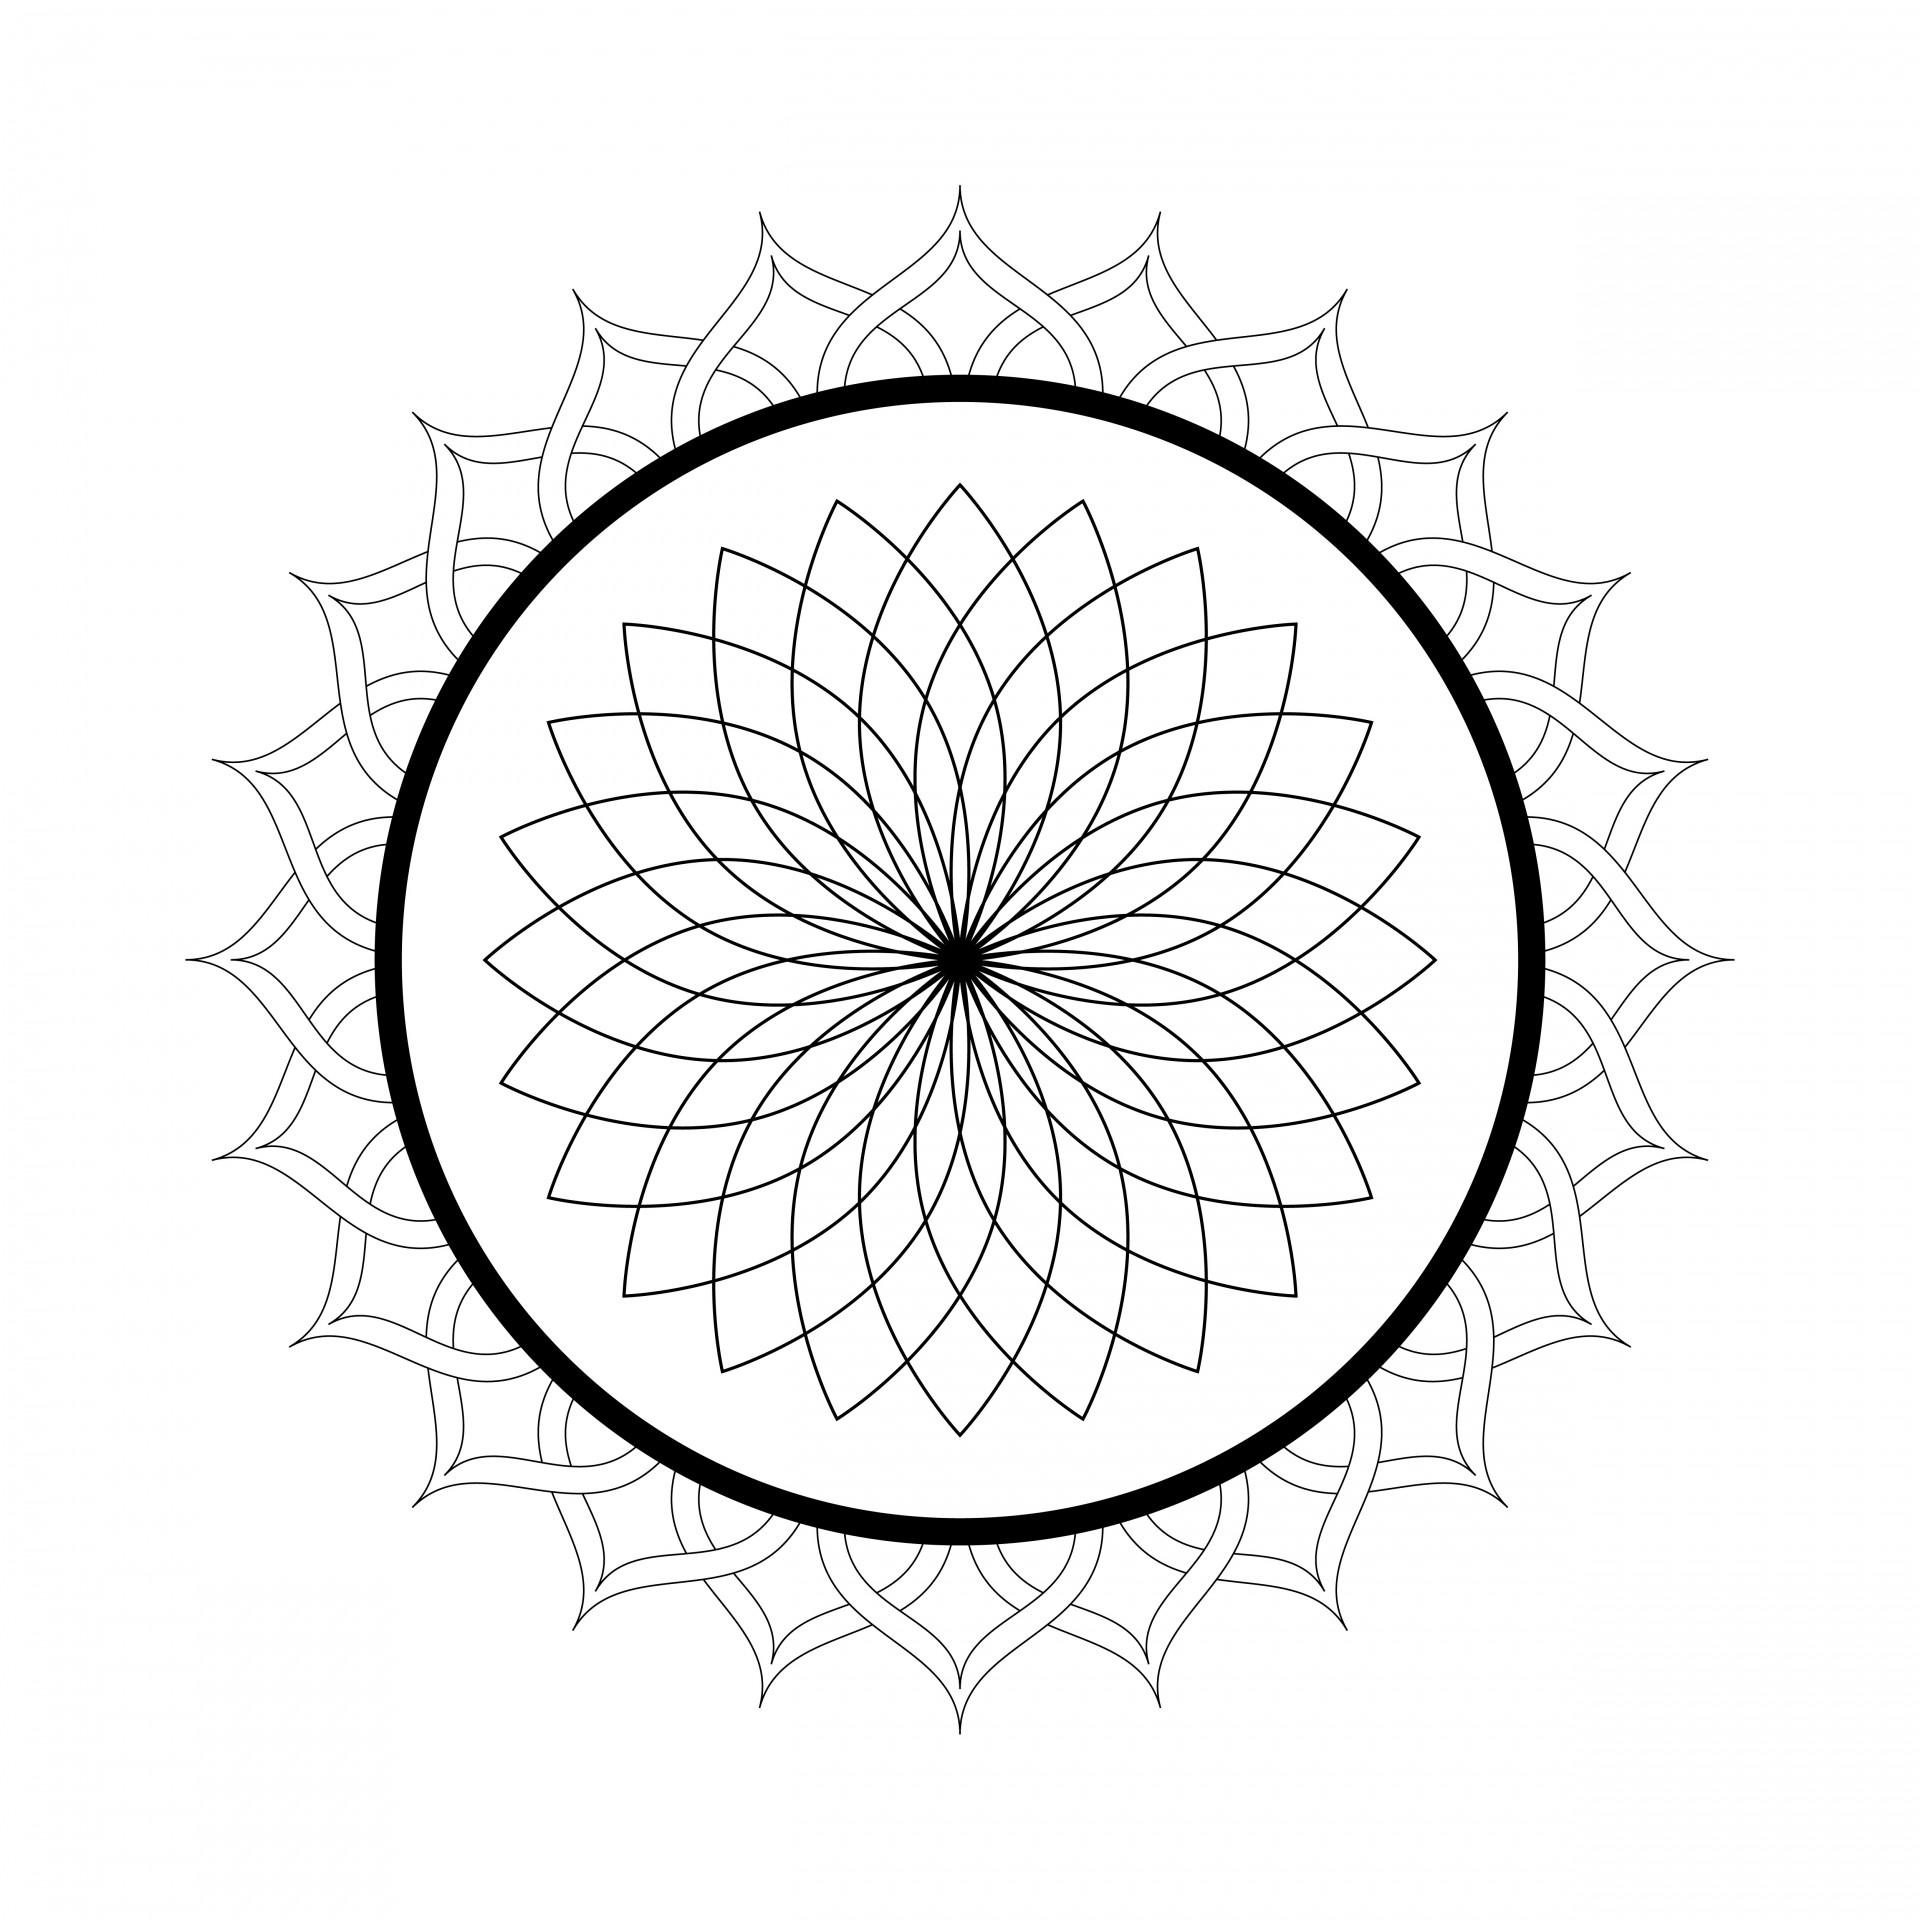 free printable mandalas for adults mandala from free coloring books for adults 26 malas mandalas free adults for printable